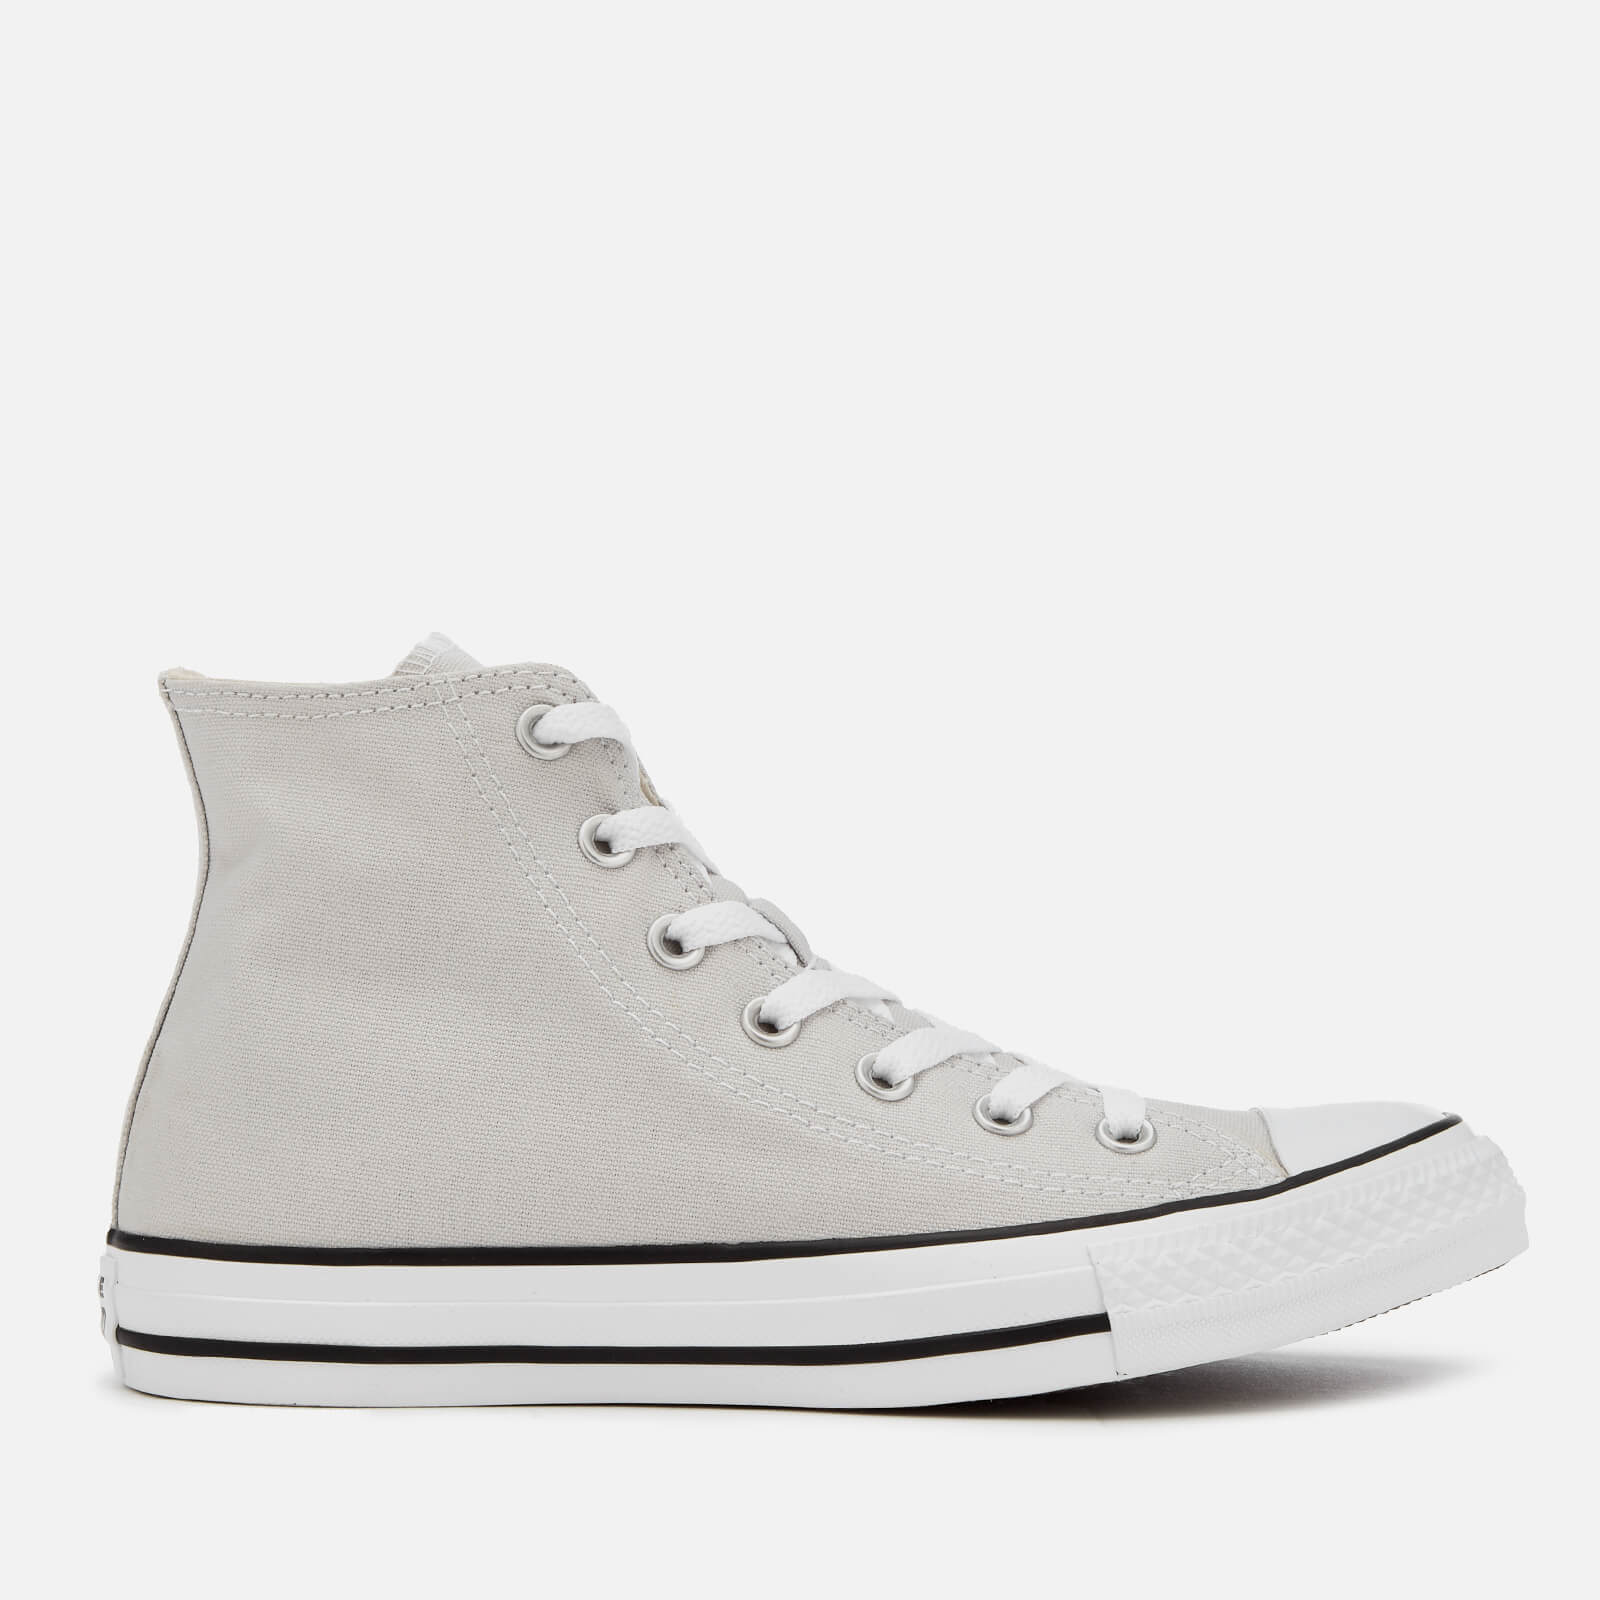 mouse grey converse high tops - 57% OFF